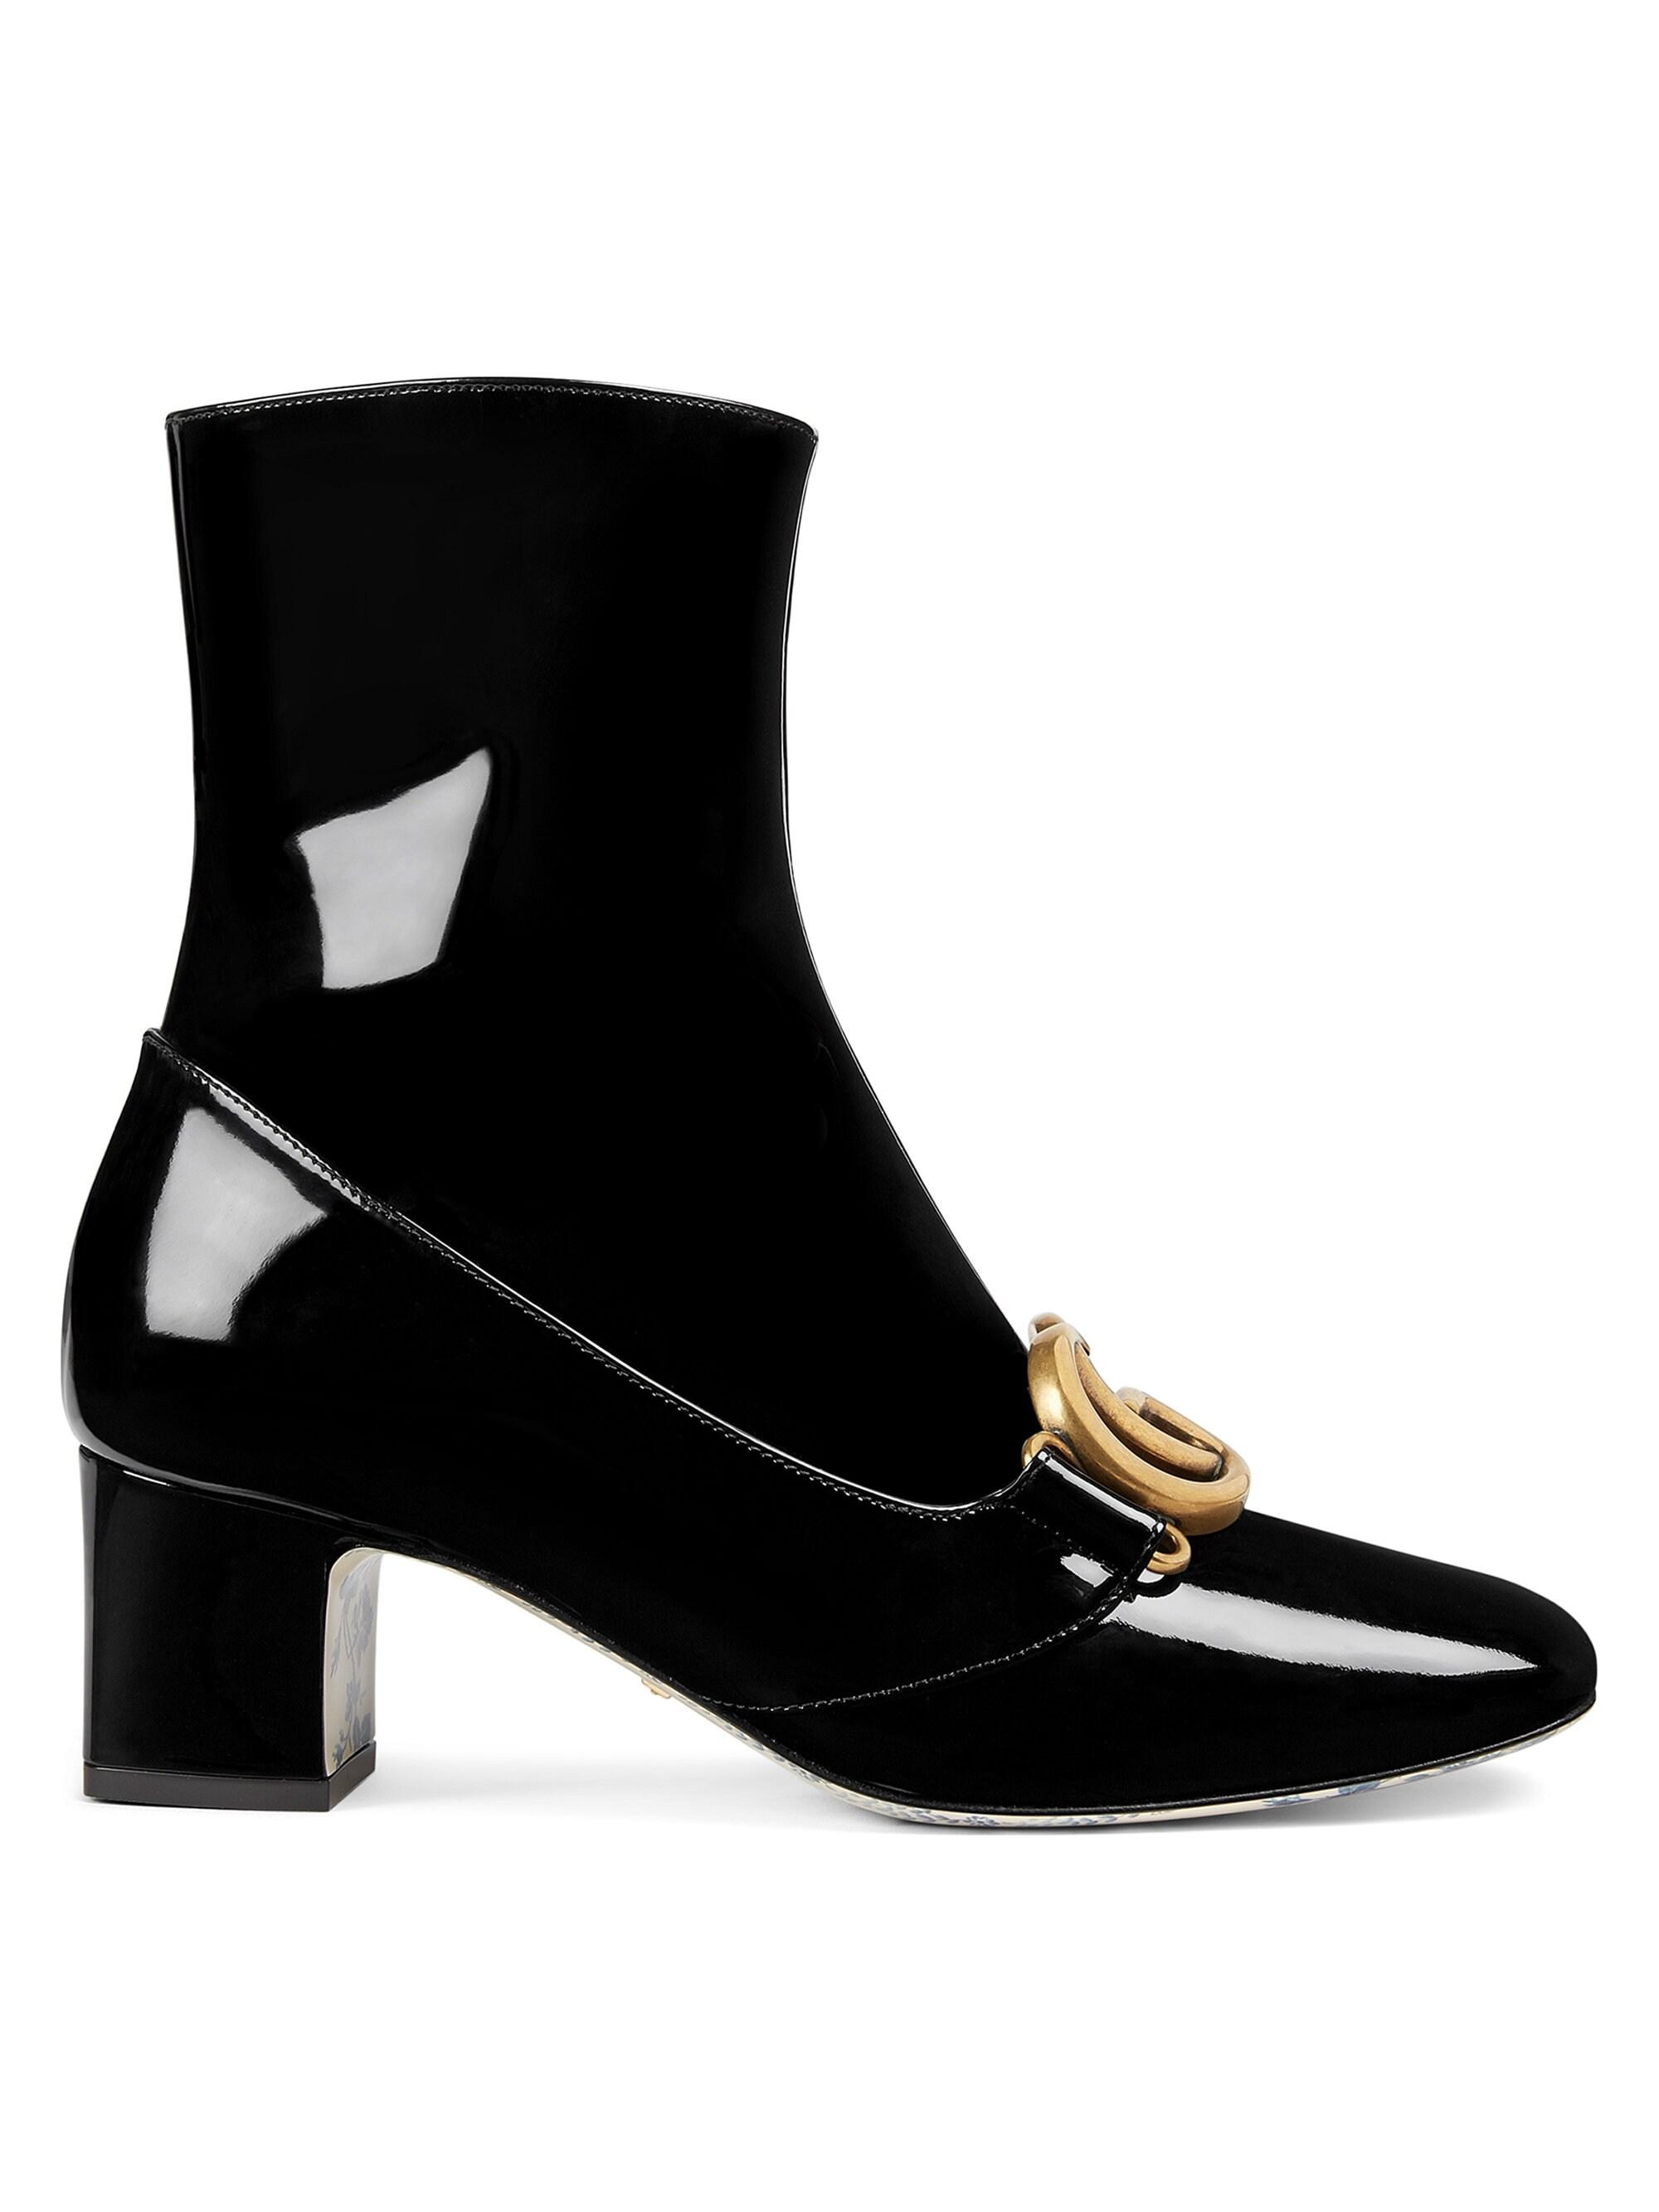 39166c7c1 Gucci Women's Patent Leather Ankle Boot With Double G - Black in ...